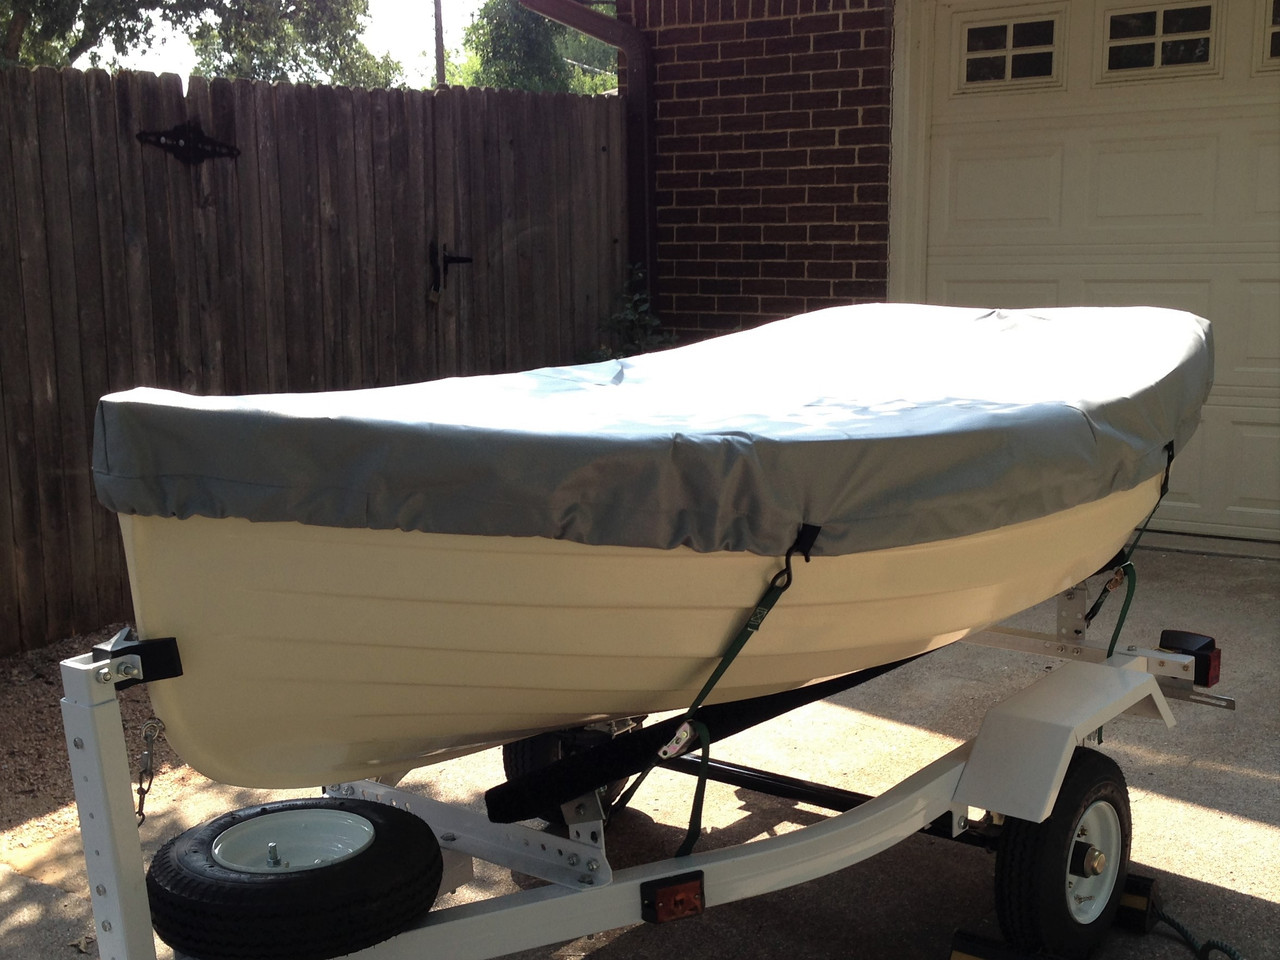 Top Cover to fit a Fatty Knees sailboat by SLO Sail and Canvas